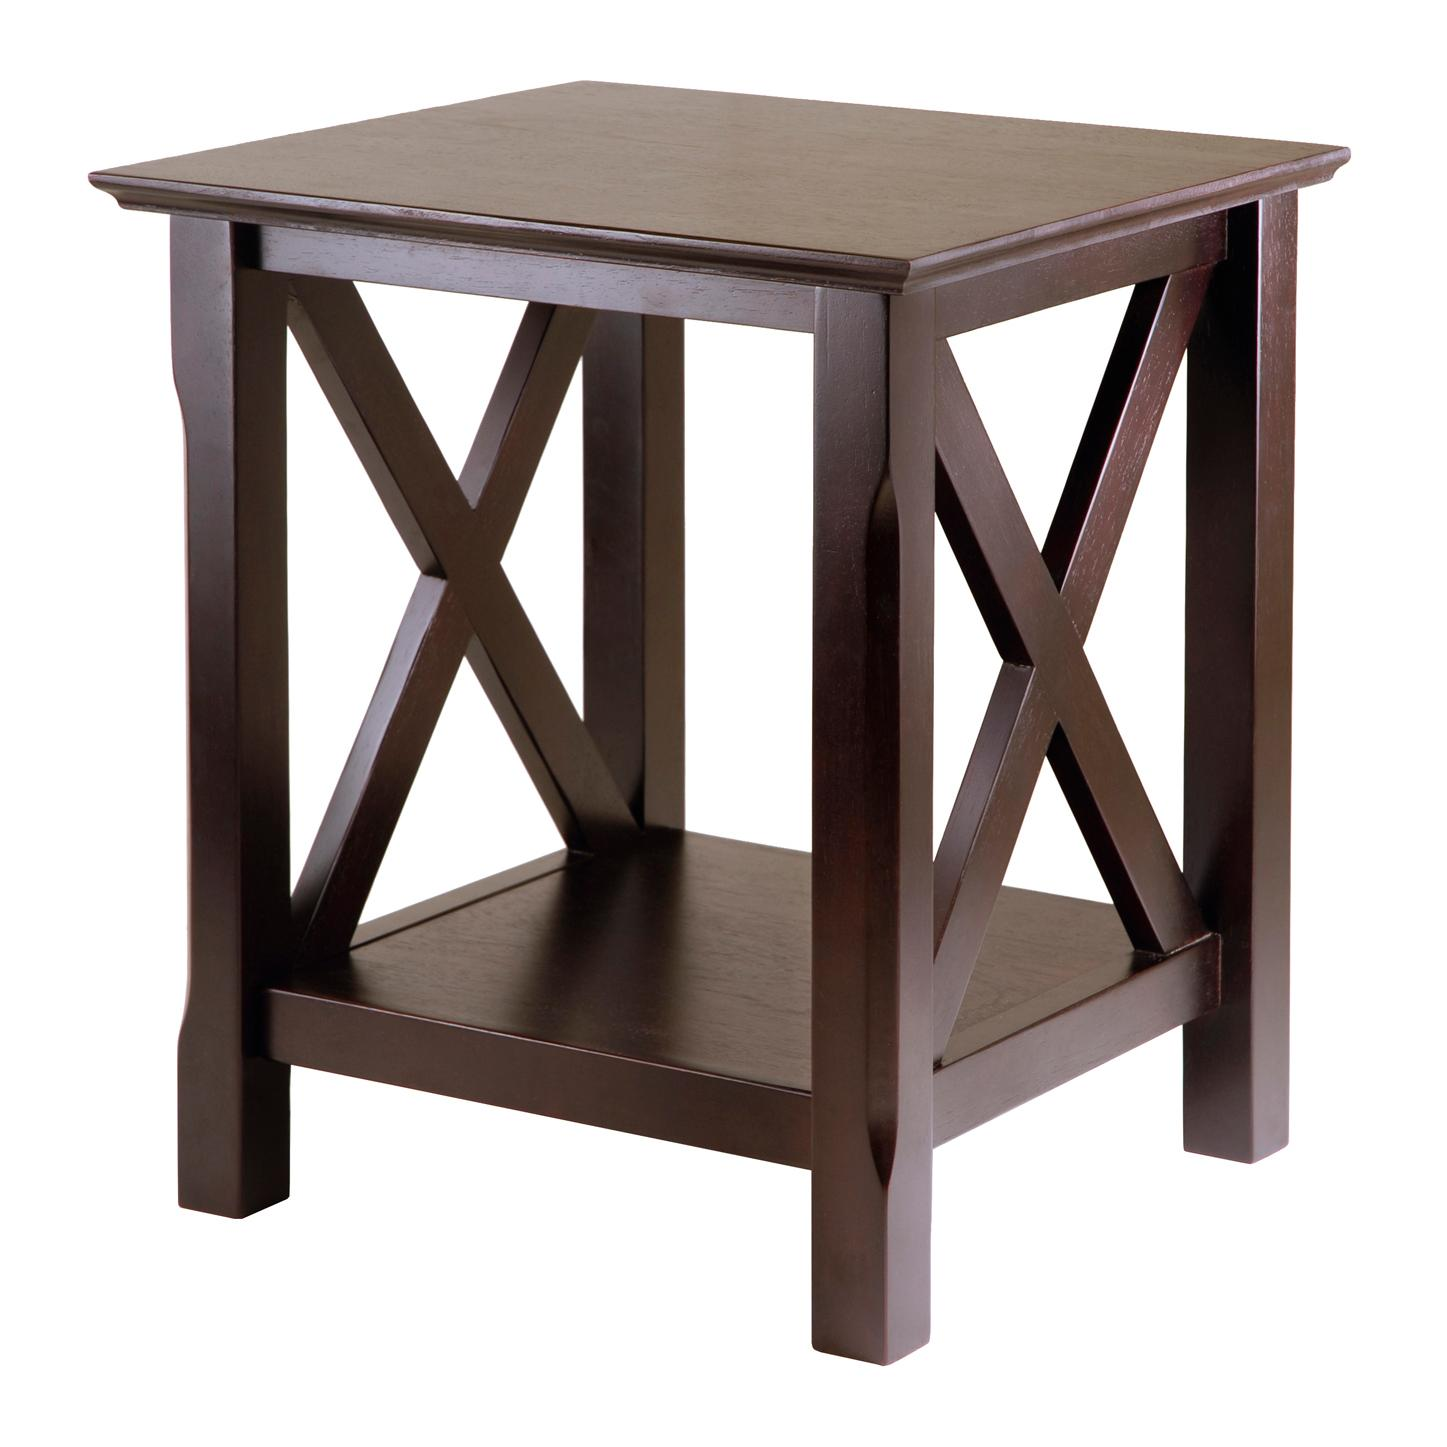 View larger. Amazon com  Winsome Wood Xola End Table  Kitchen   Dining